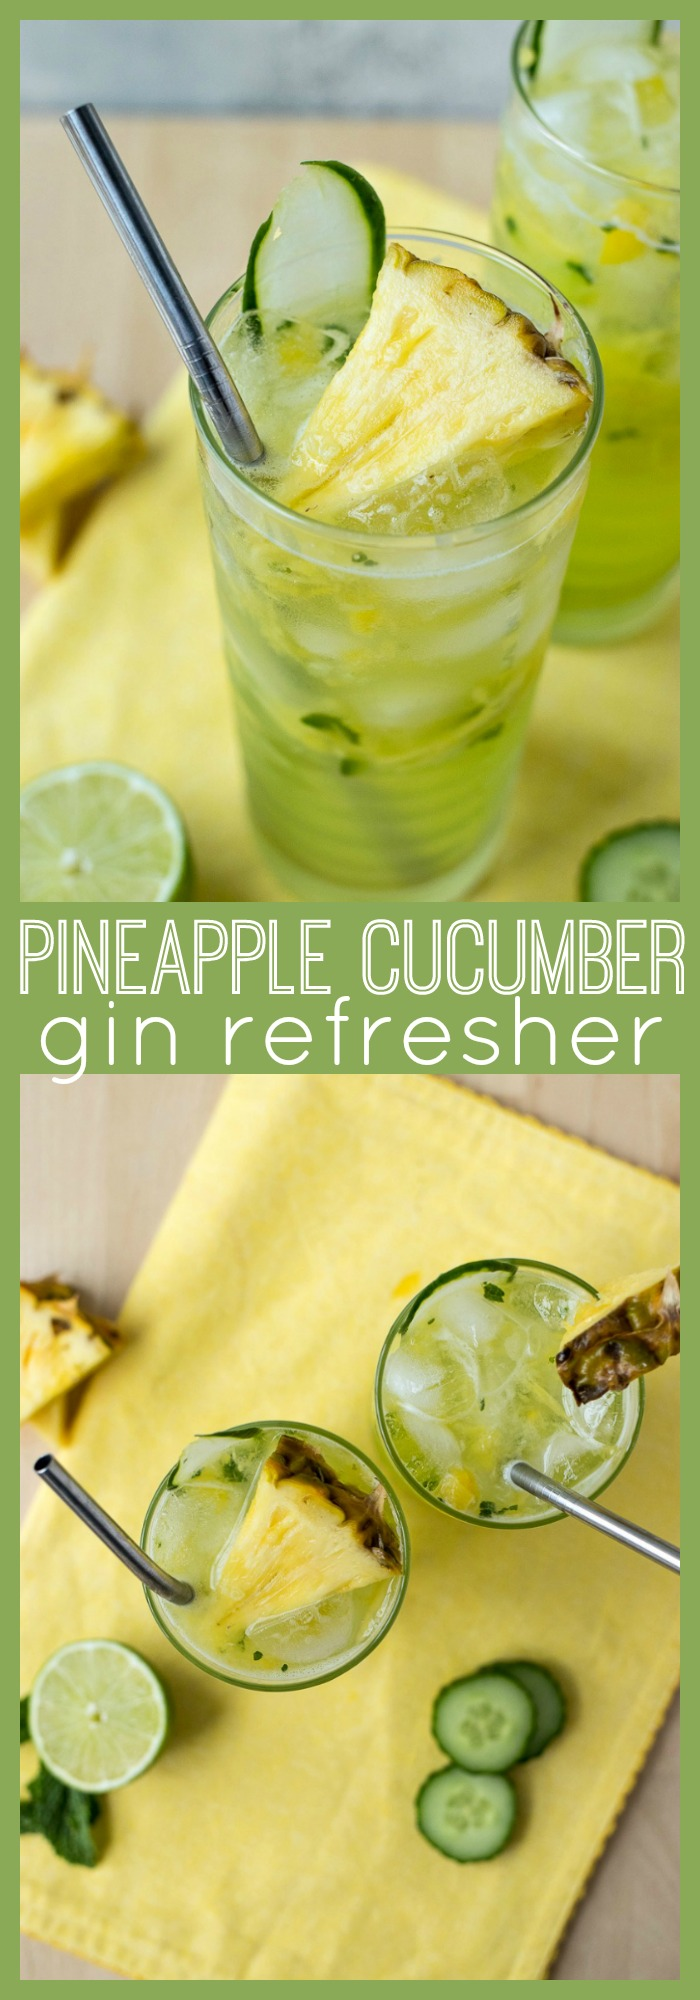 Cucumber Pineapple Gin Refresher photo collage